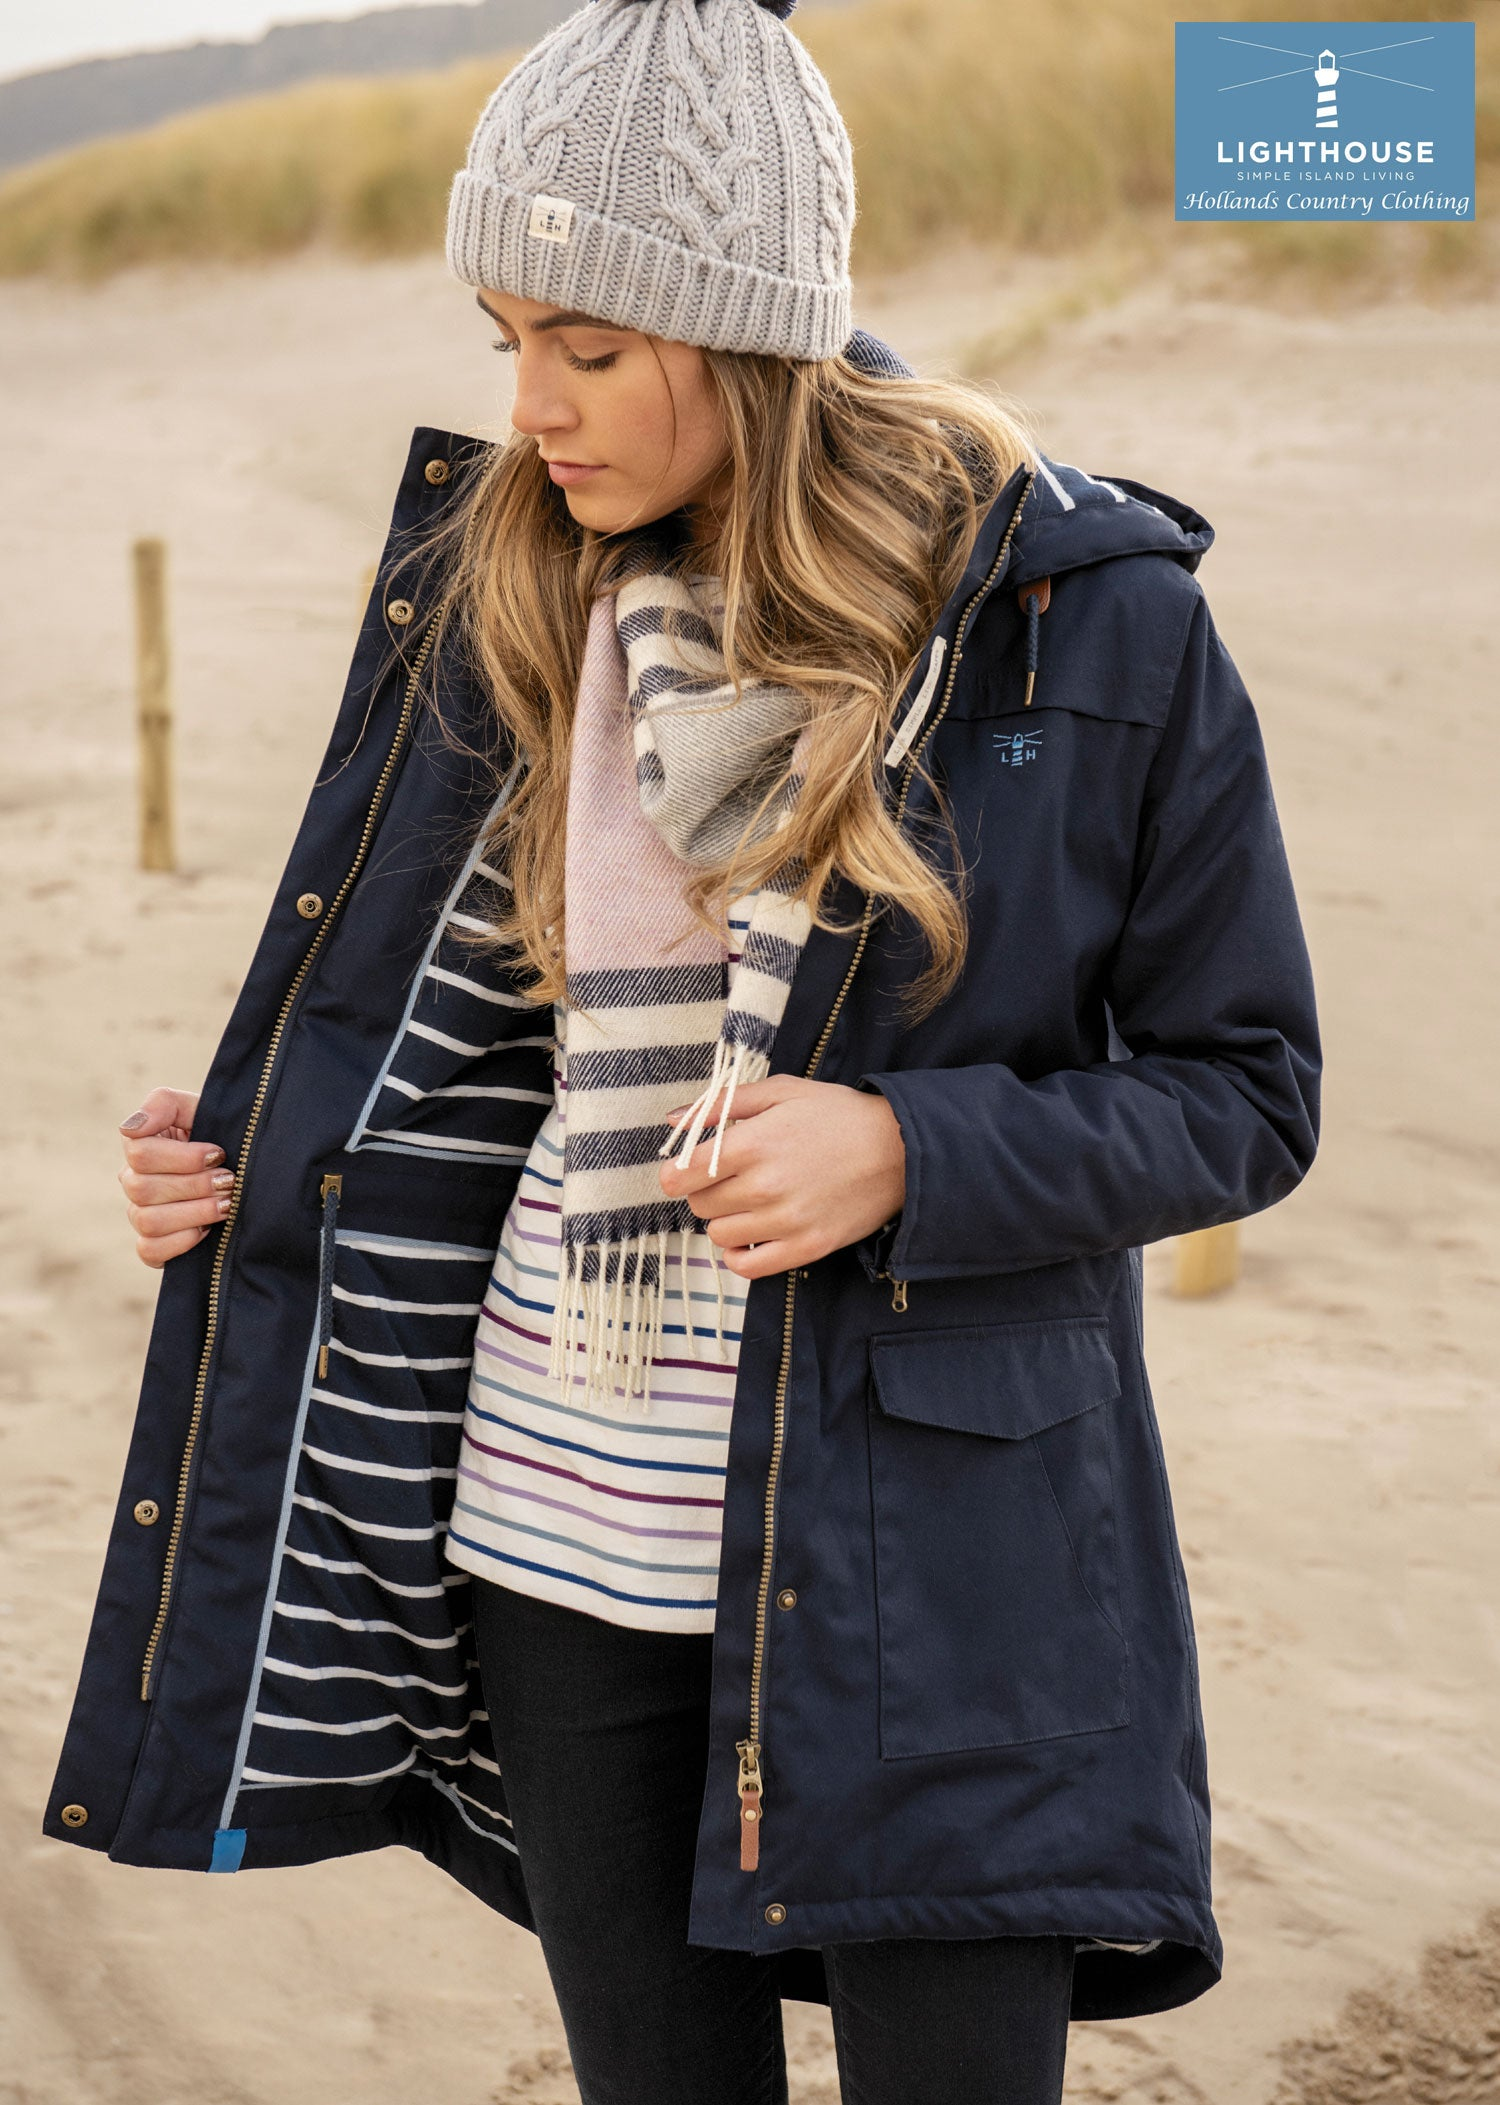 Showing the navy striped lining